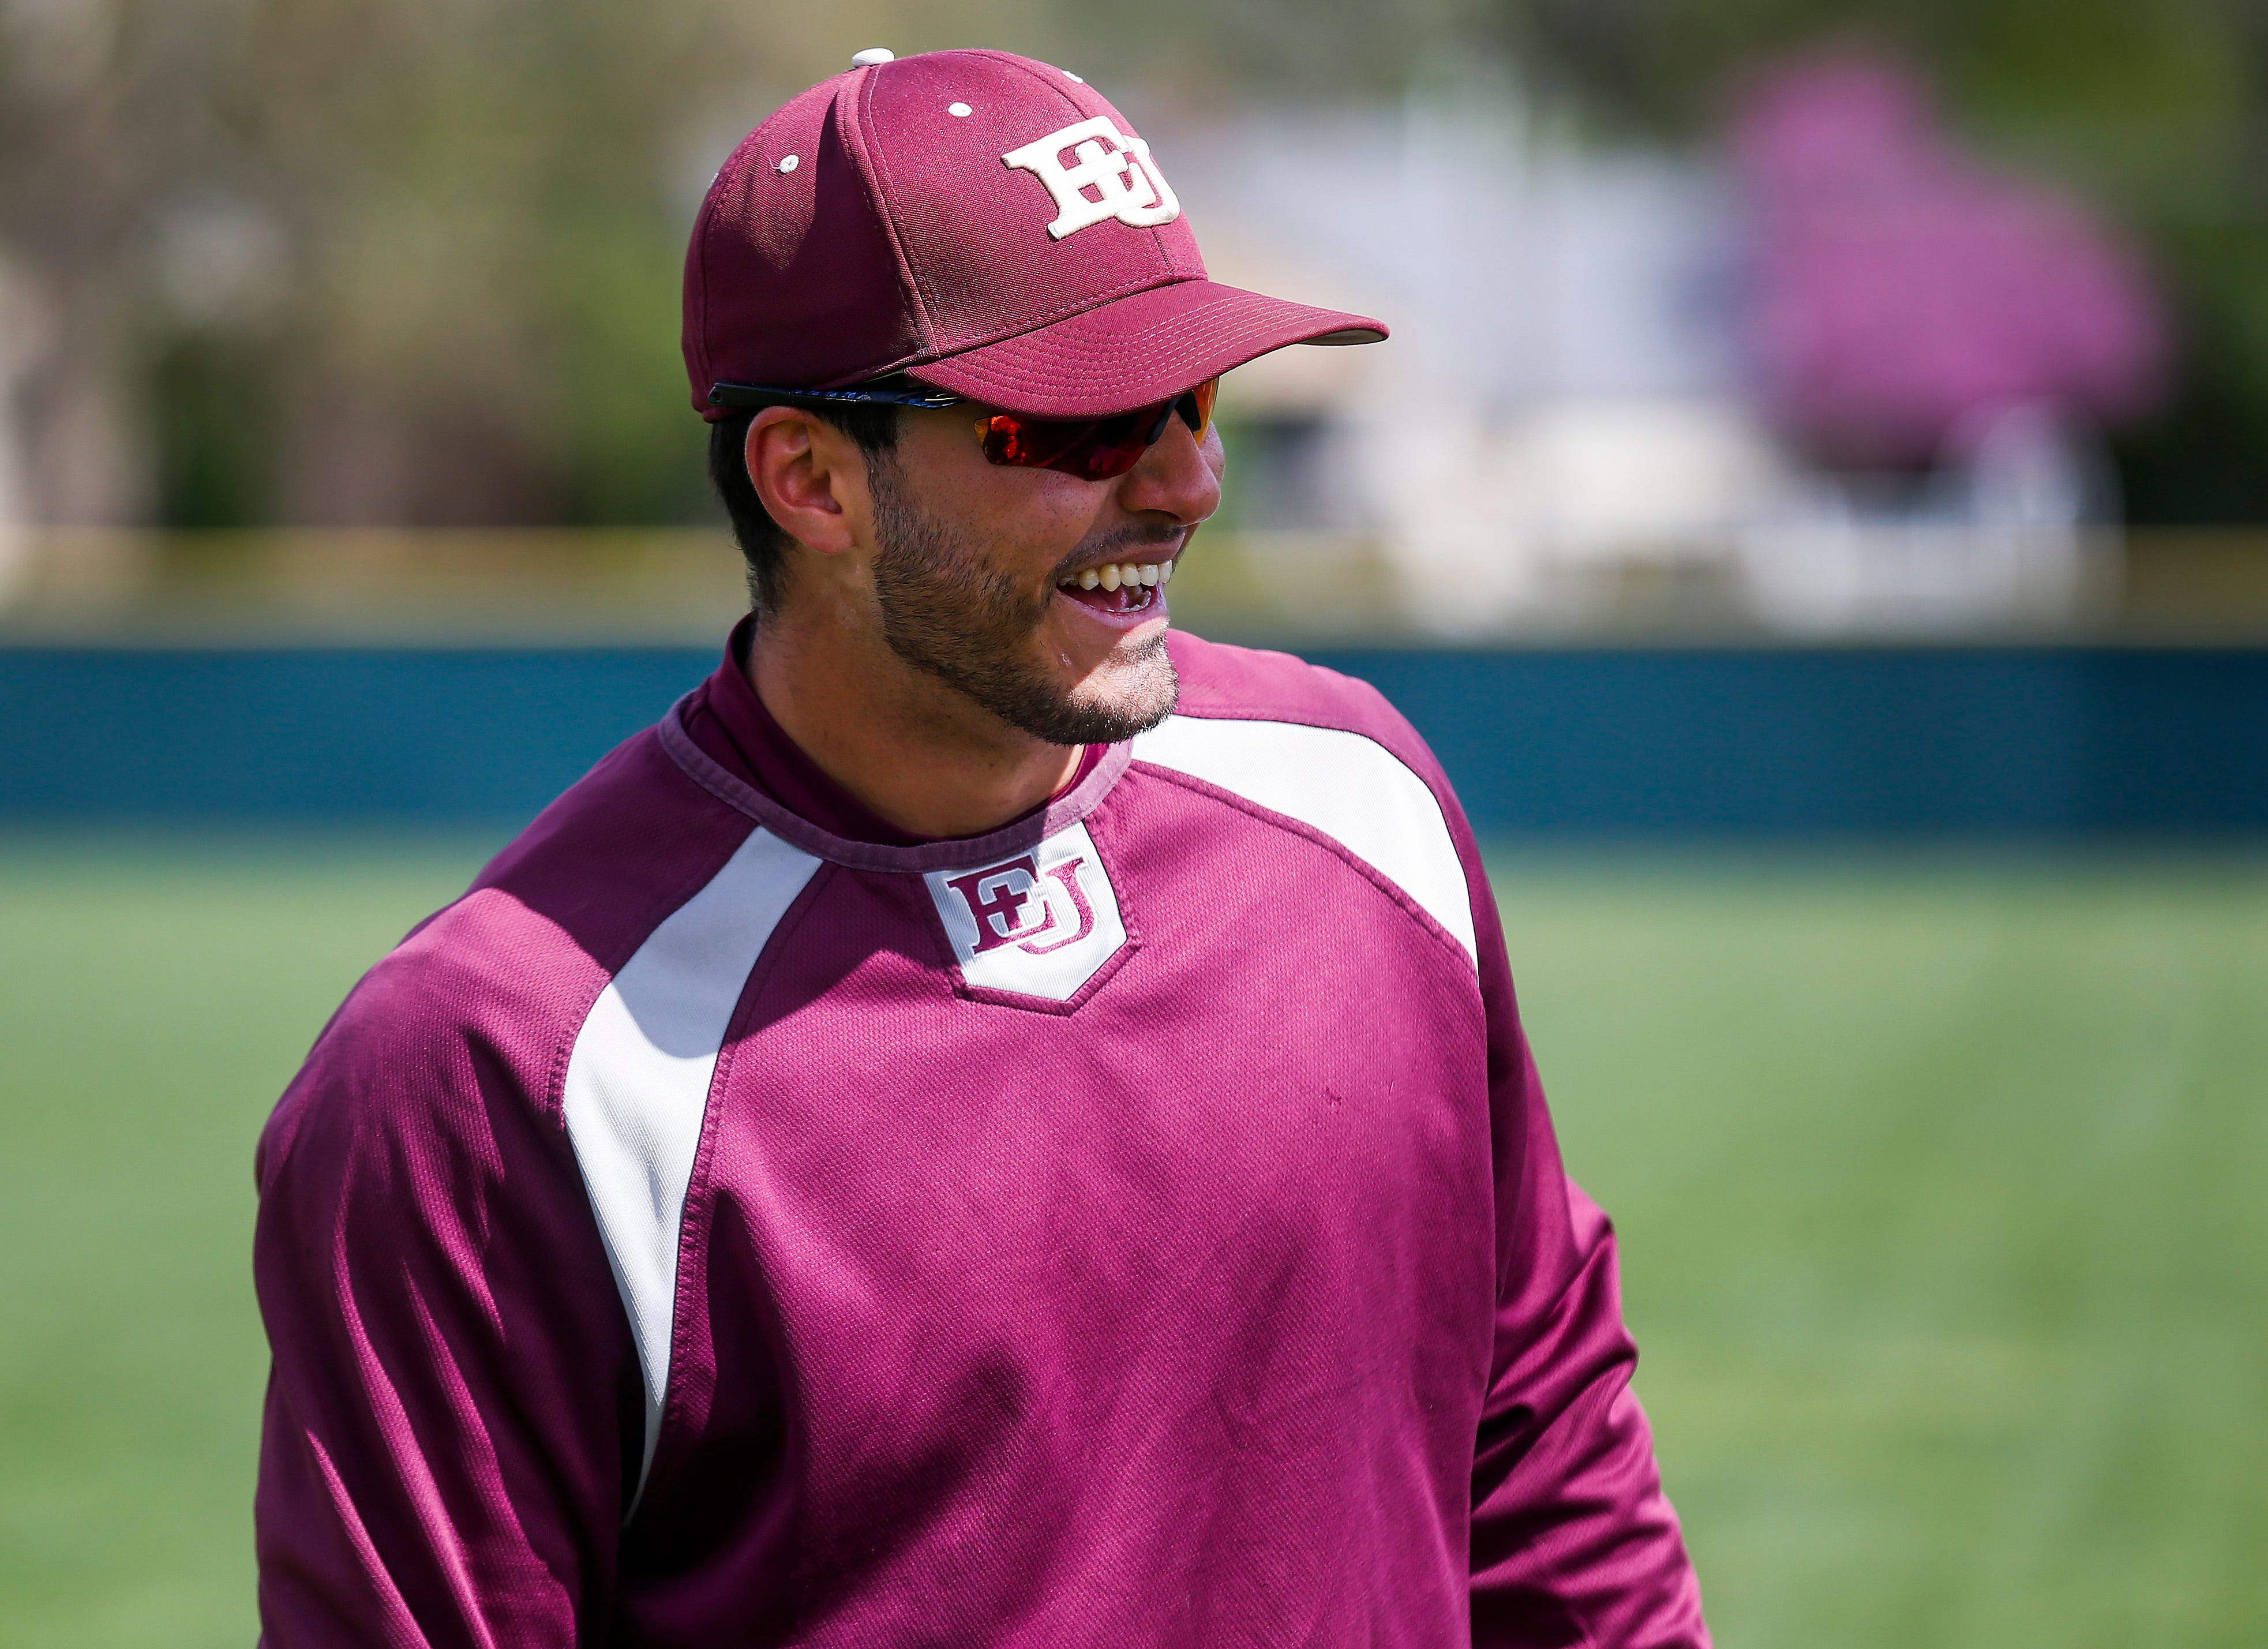 Jose Vargas, a shortstop at Evangel University, laughs with teammates before a double-header on Friday, April 19, 2019. Vargas, a senior, is stuck in limbo because of what is happening in his home country of Venezuela.